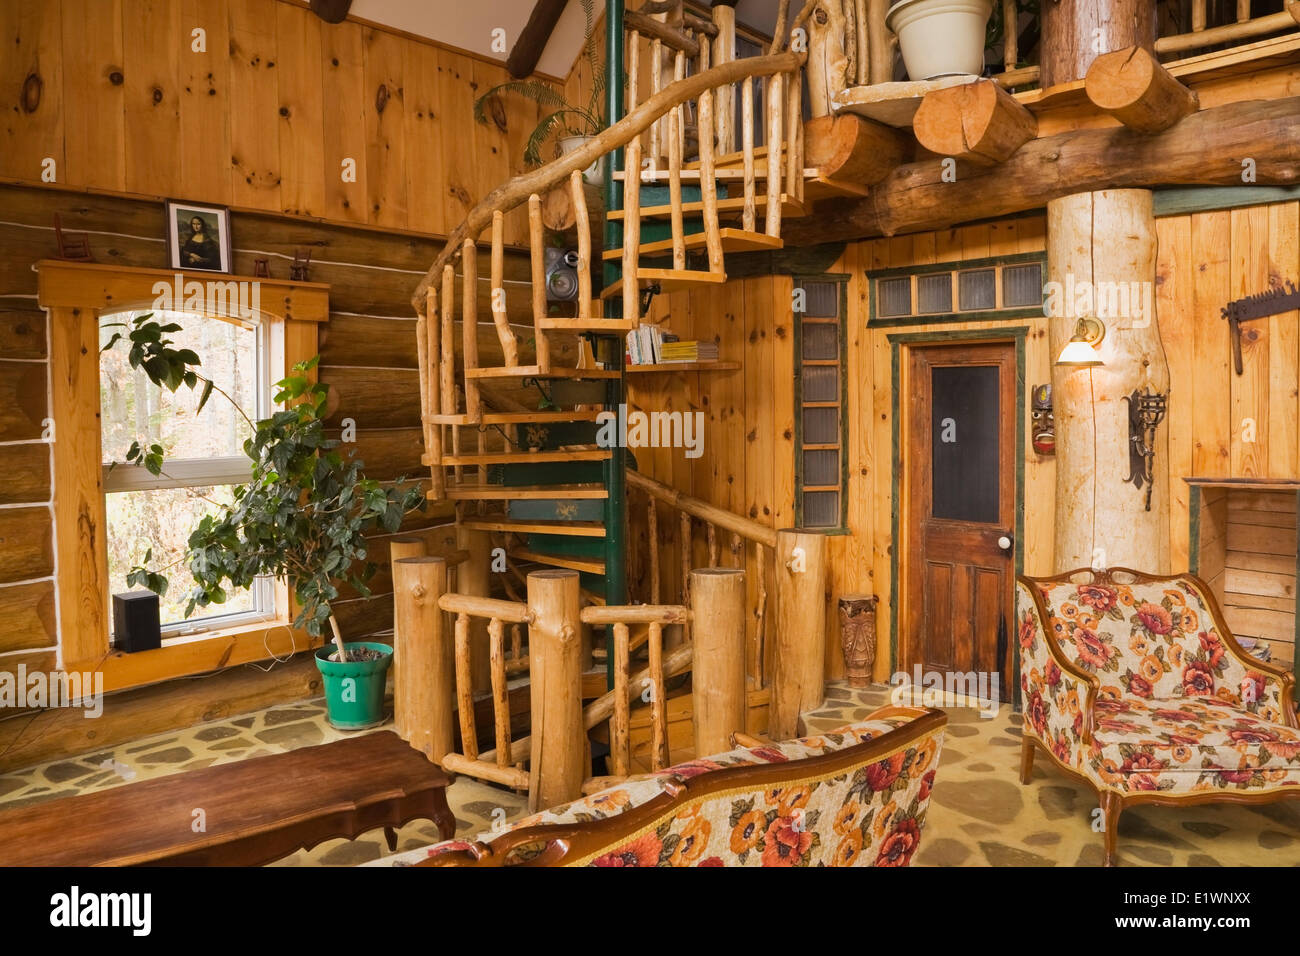 Spiral Shaped Staircase In The Living Room Inside A Rustic Cottage Style  Residential Log Home Quebec Canada. This Image Is